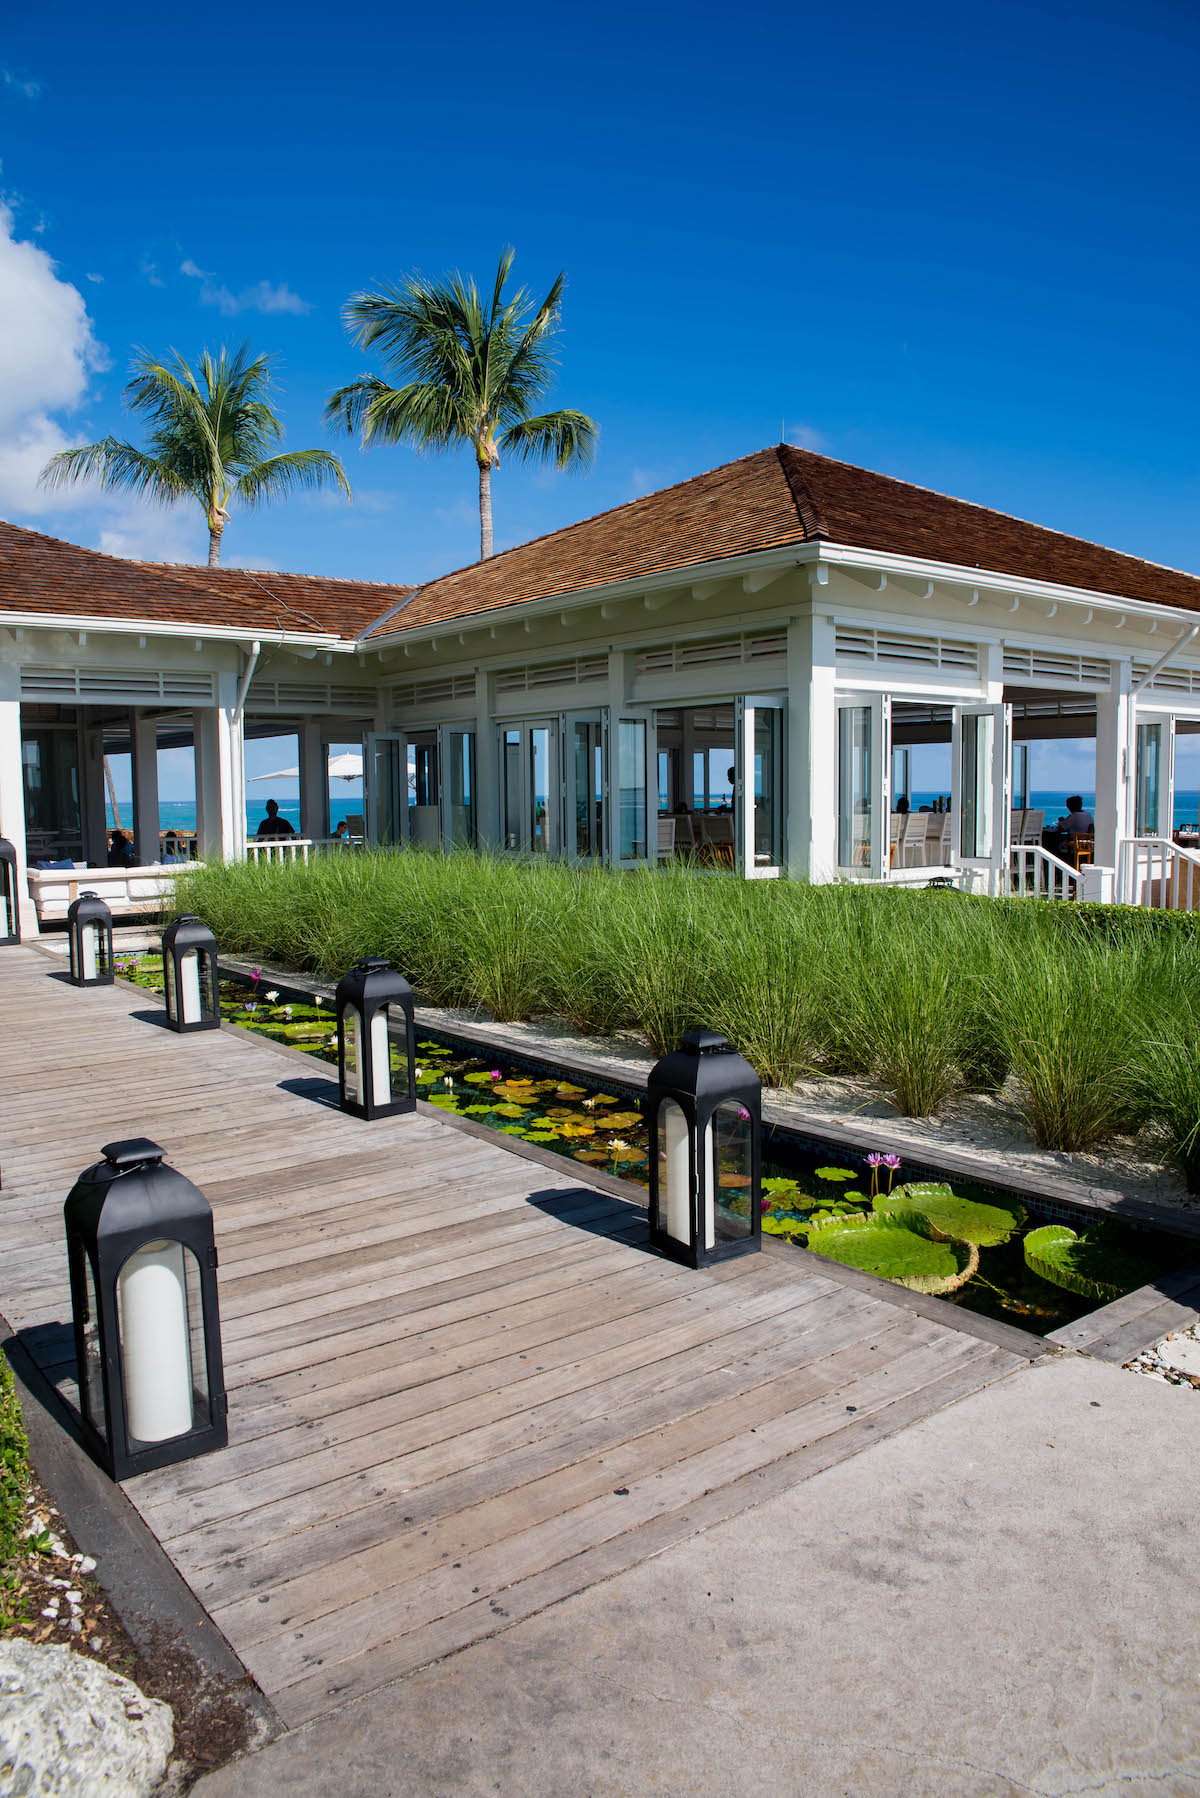 One&Only Ocean Club Resort Review & Photo Diary